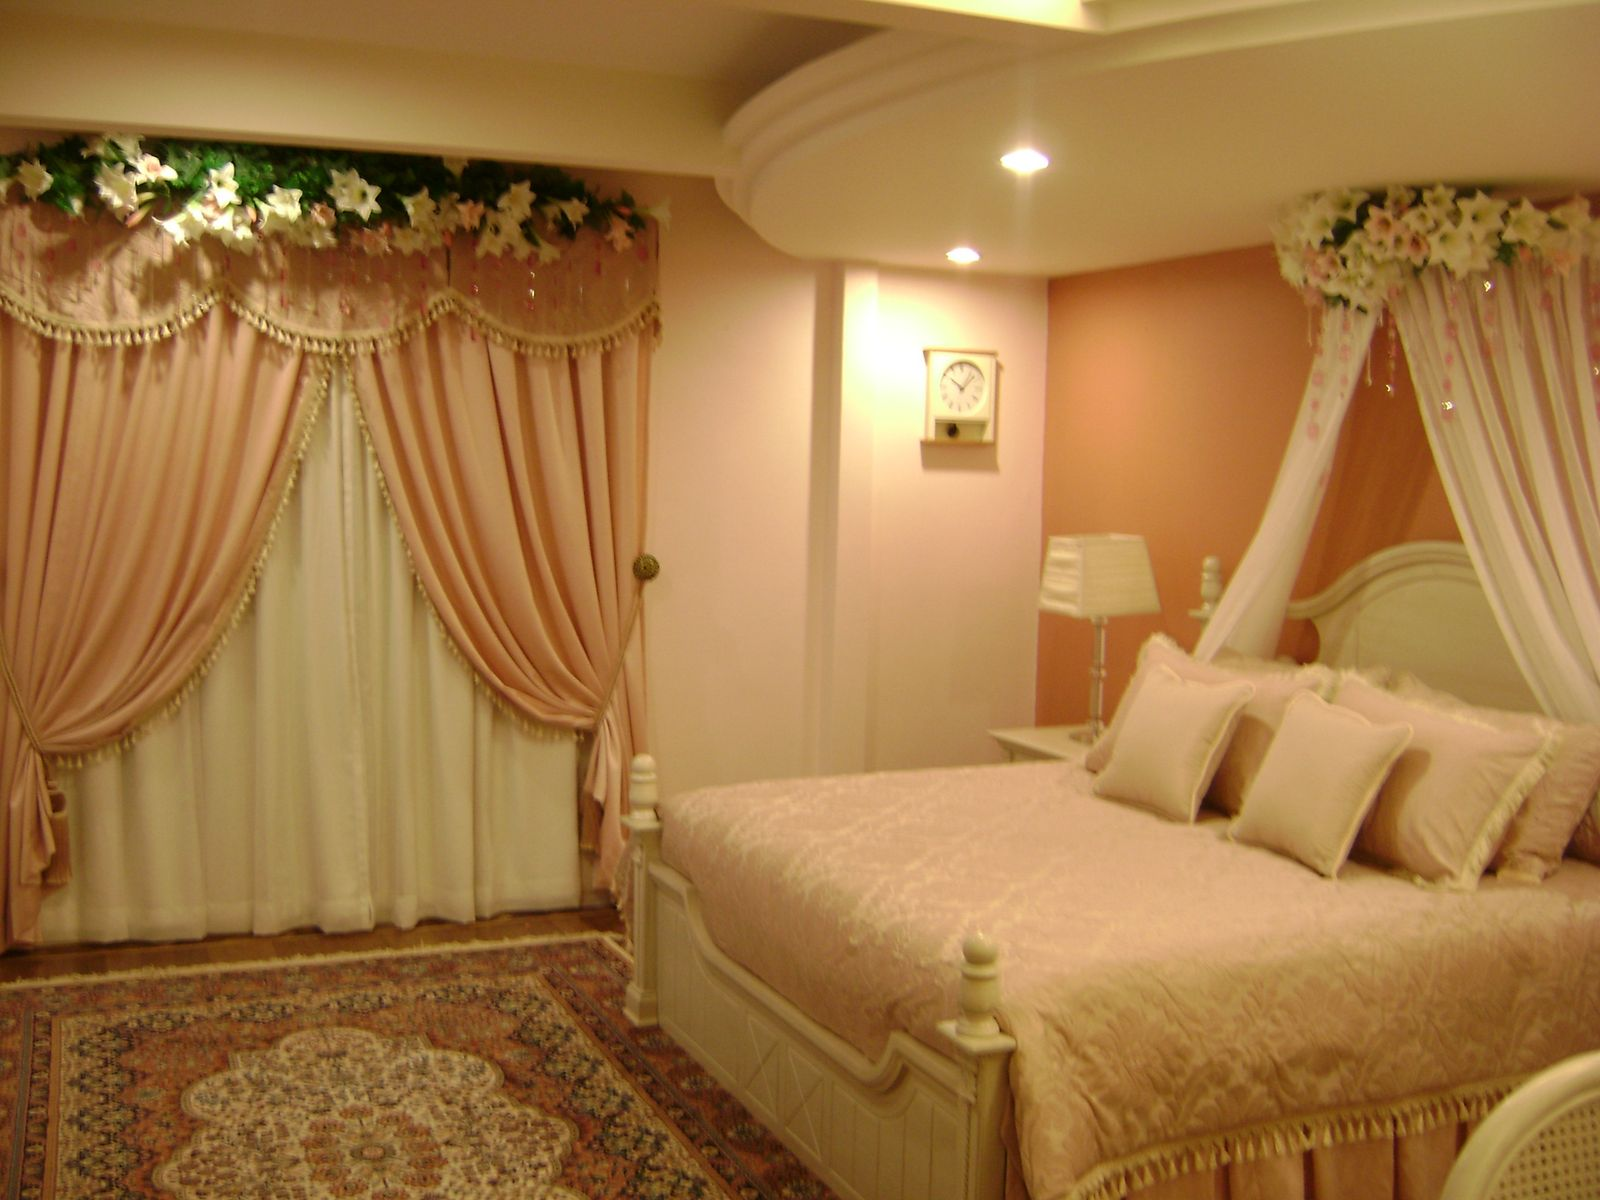 in the wedding bed decoration use flower bouquet and some